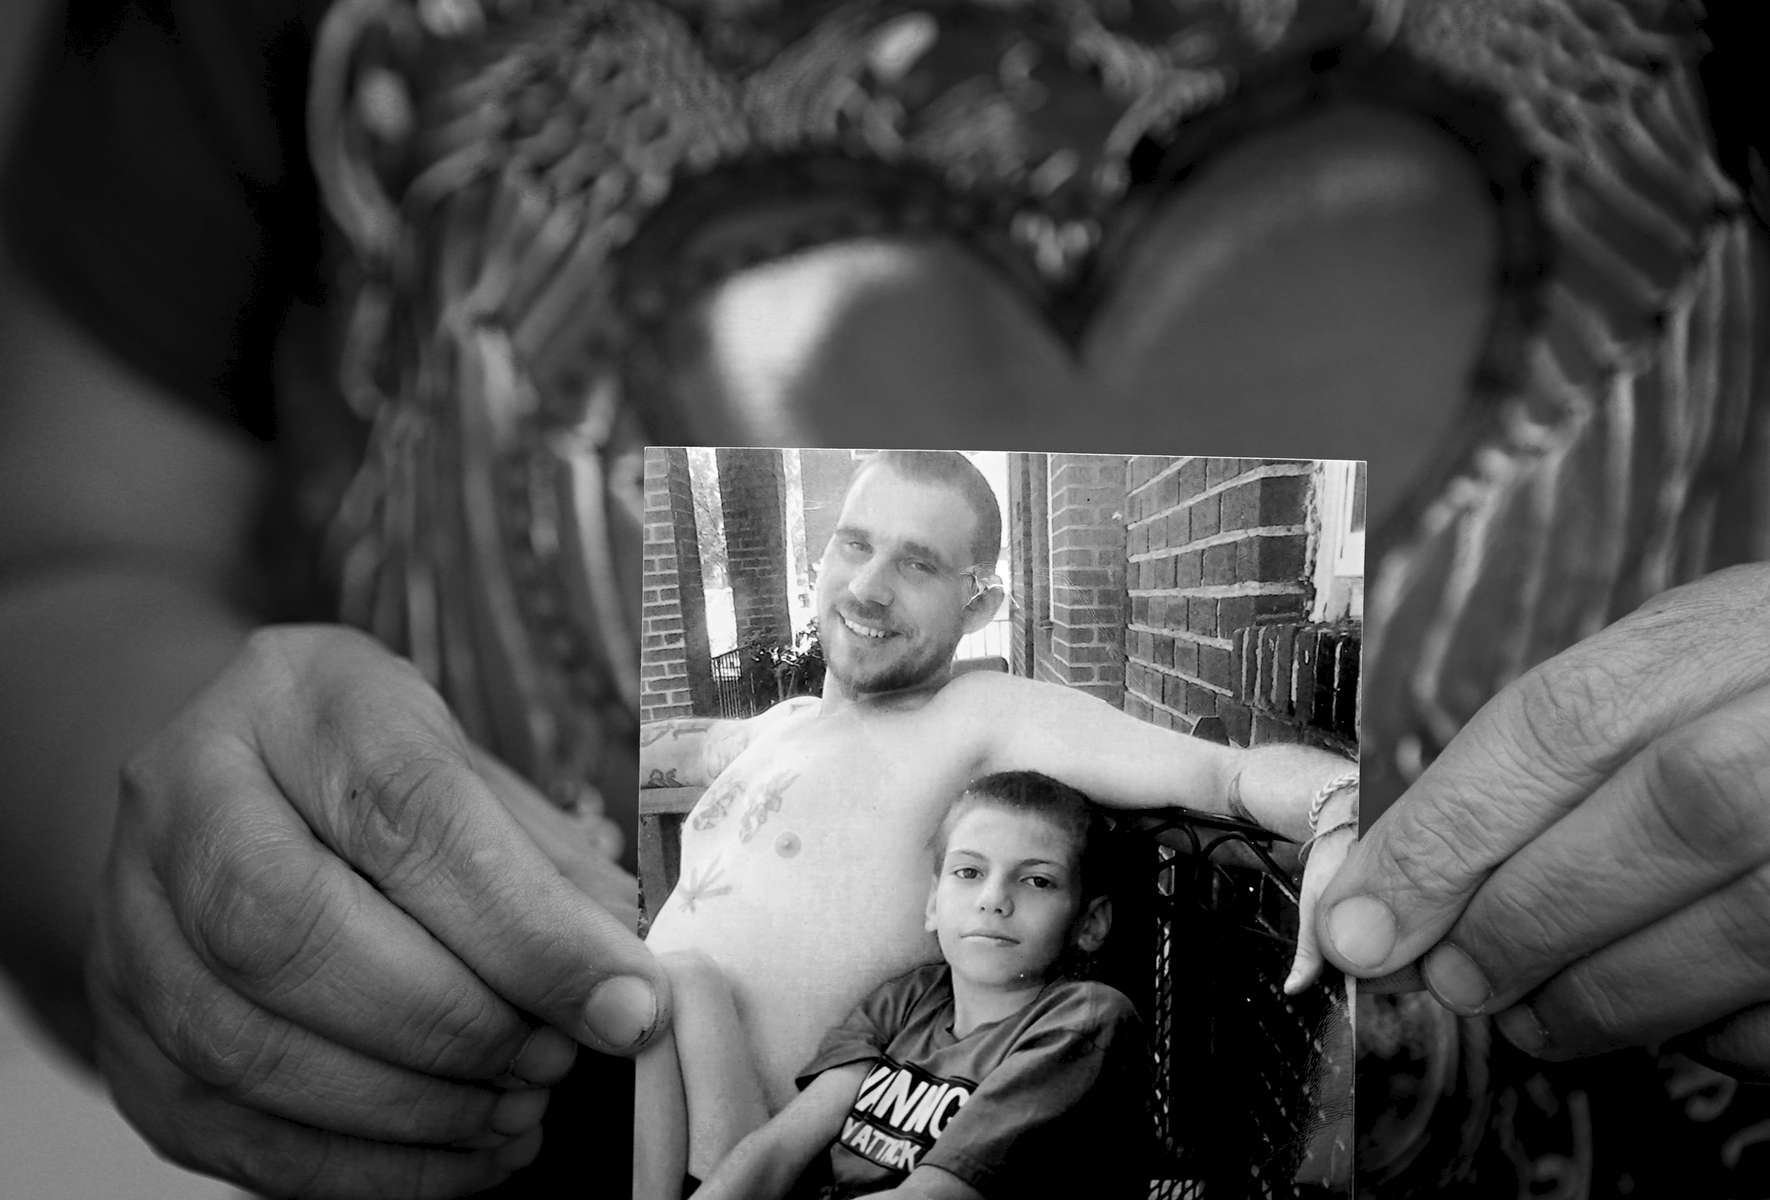 Maria Torres, 44, holds a picture on Monday, Feb. 6, 2017 of her deceased husband Allen Goins who died of acute fentanyl intoxication on in February of 2016. Goins was one of more than 270 fatal opioid overdoses that happened in the city of St. Louis in 2016. The boy pictured with Goins is Dominic Torres, the son of Maria and Goins.